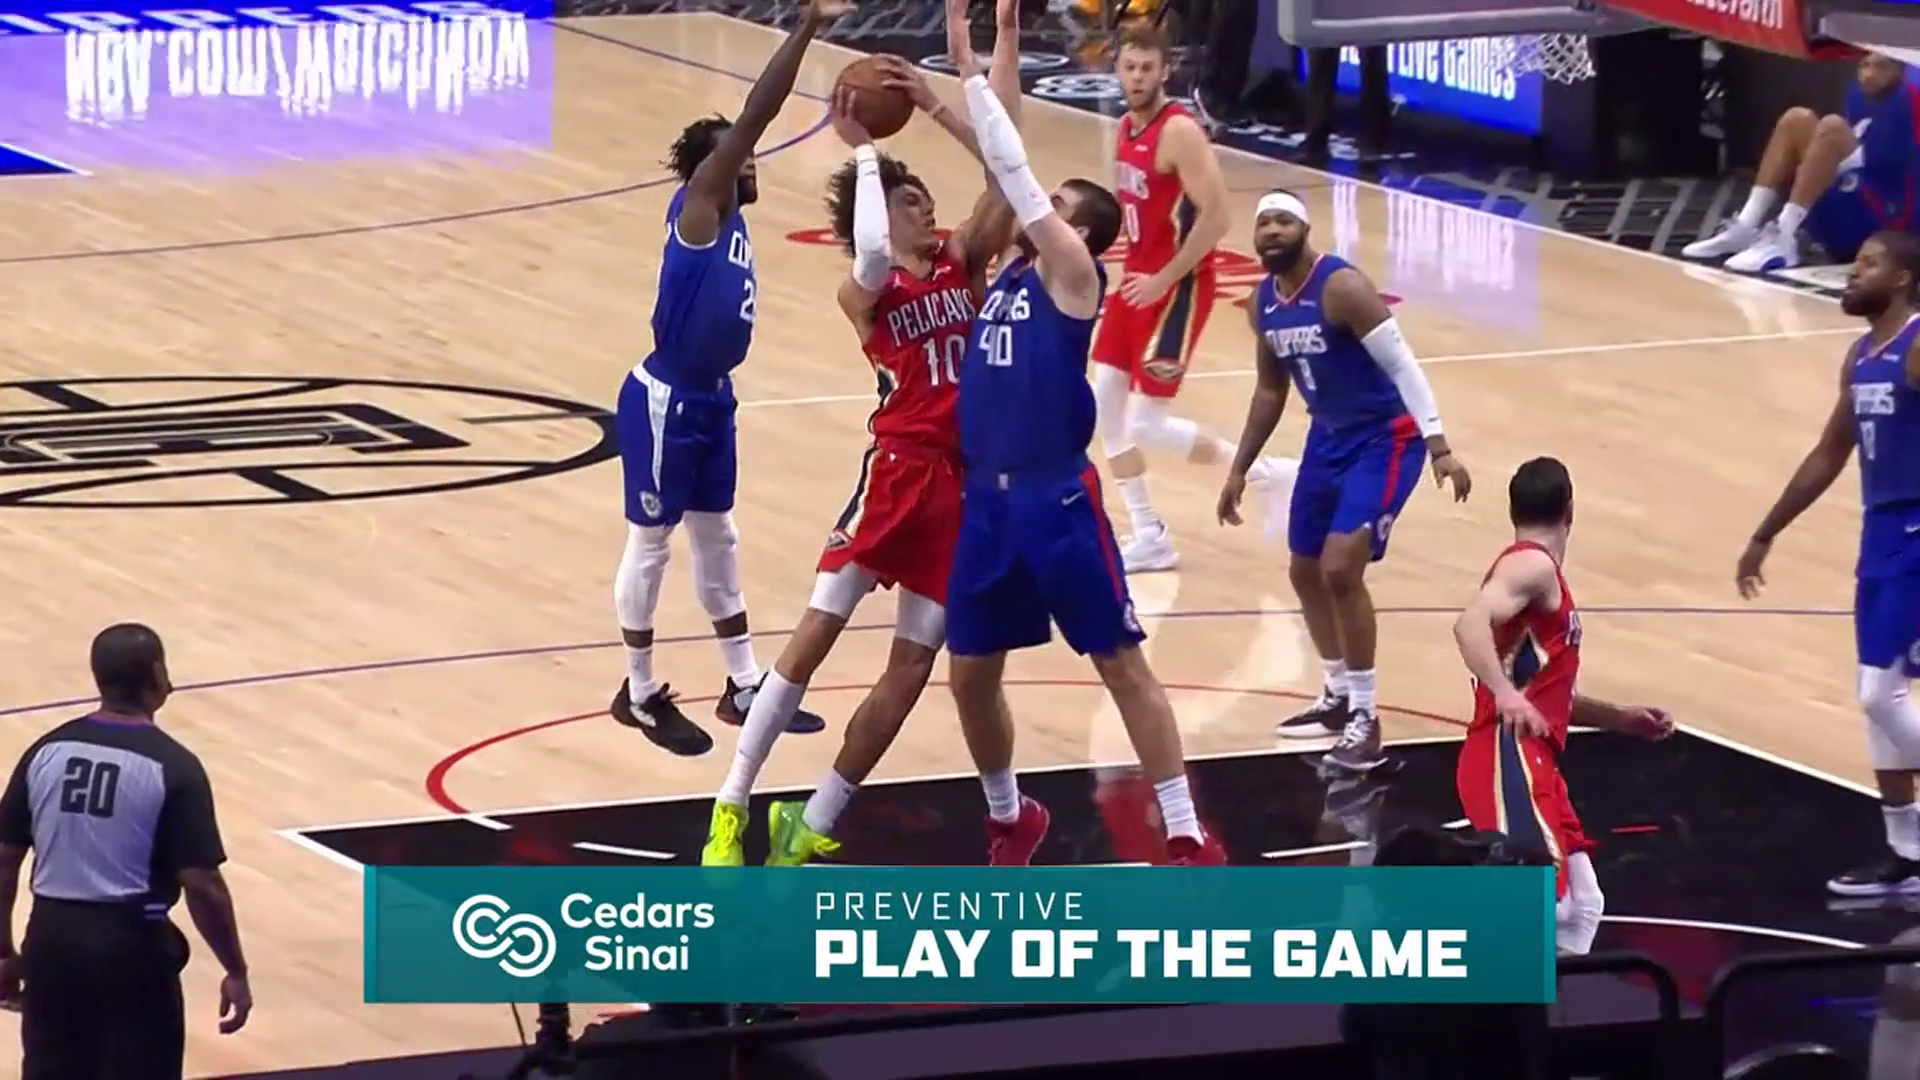 Cedars-Sinai Preventive Play of the Game | Clippers vs Pelicans (1.13.21)